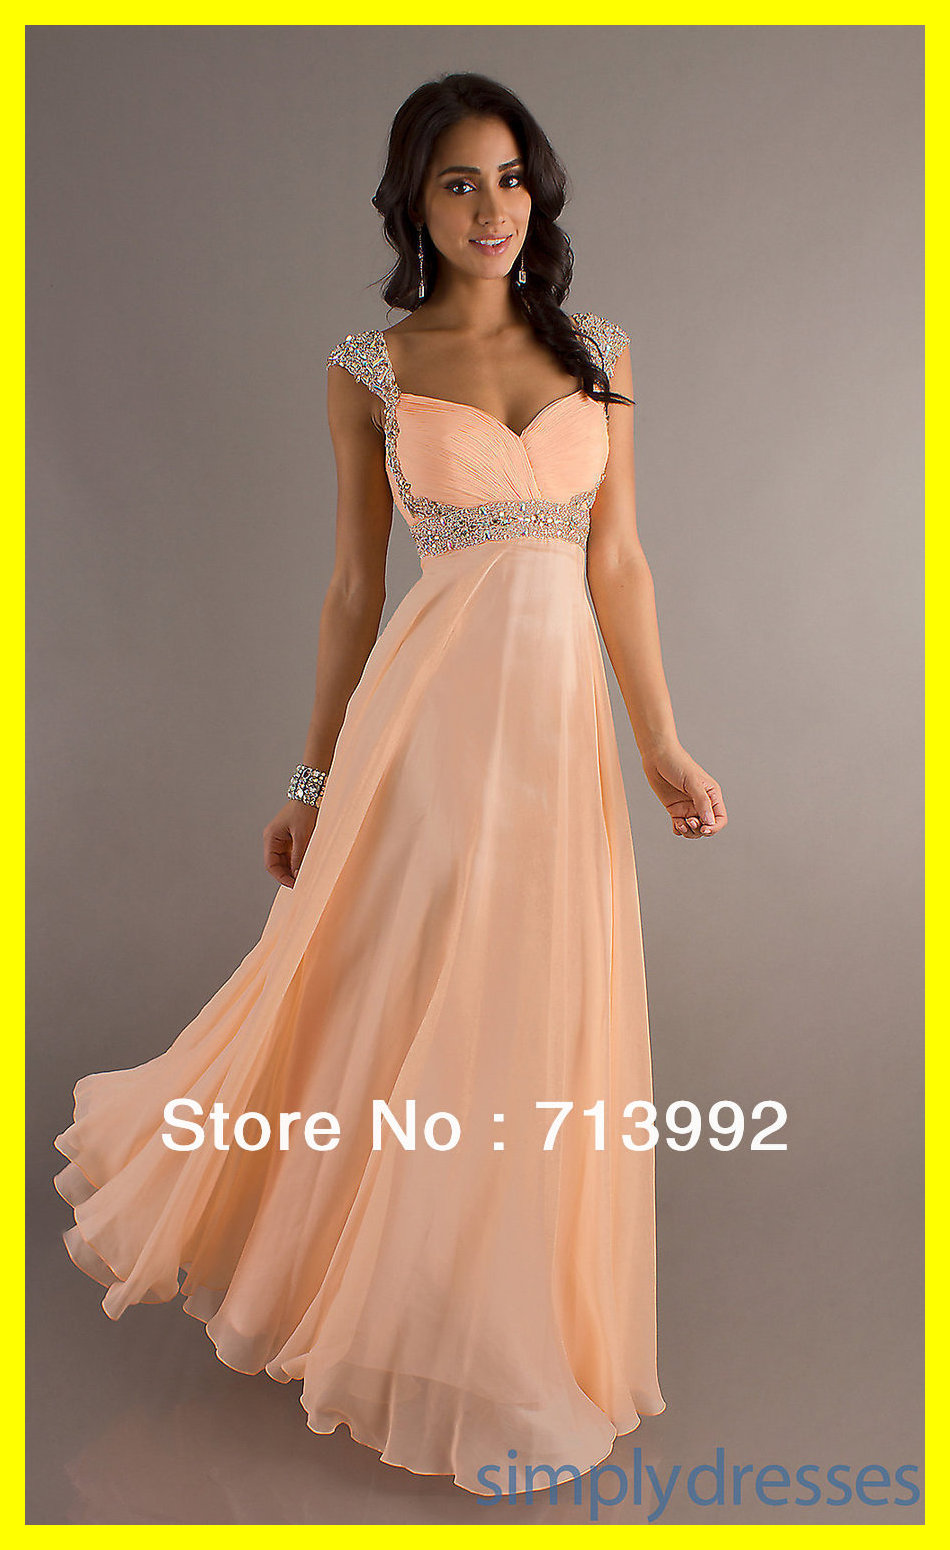 Fashion Prom Dresses Western Plus Size On Sale Montreal A-Line Floor-Length Court Train Built-In Bra Crystal V-N 2015 Wholesale(China (Mainland))